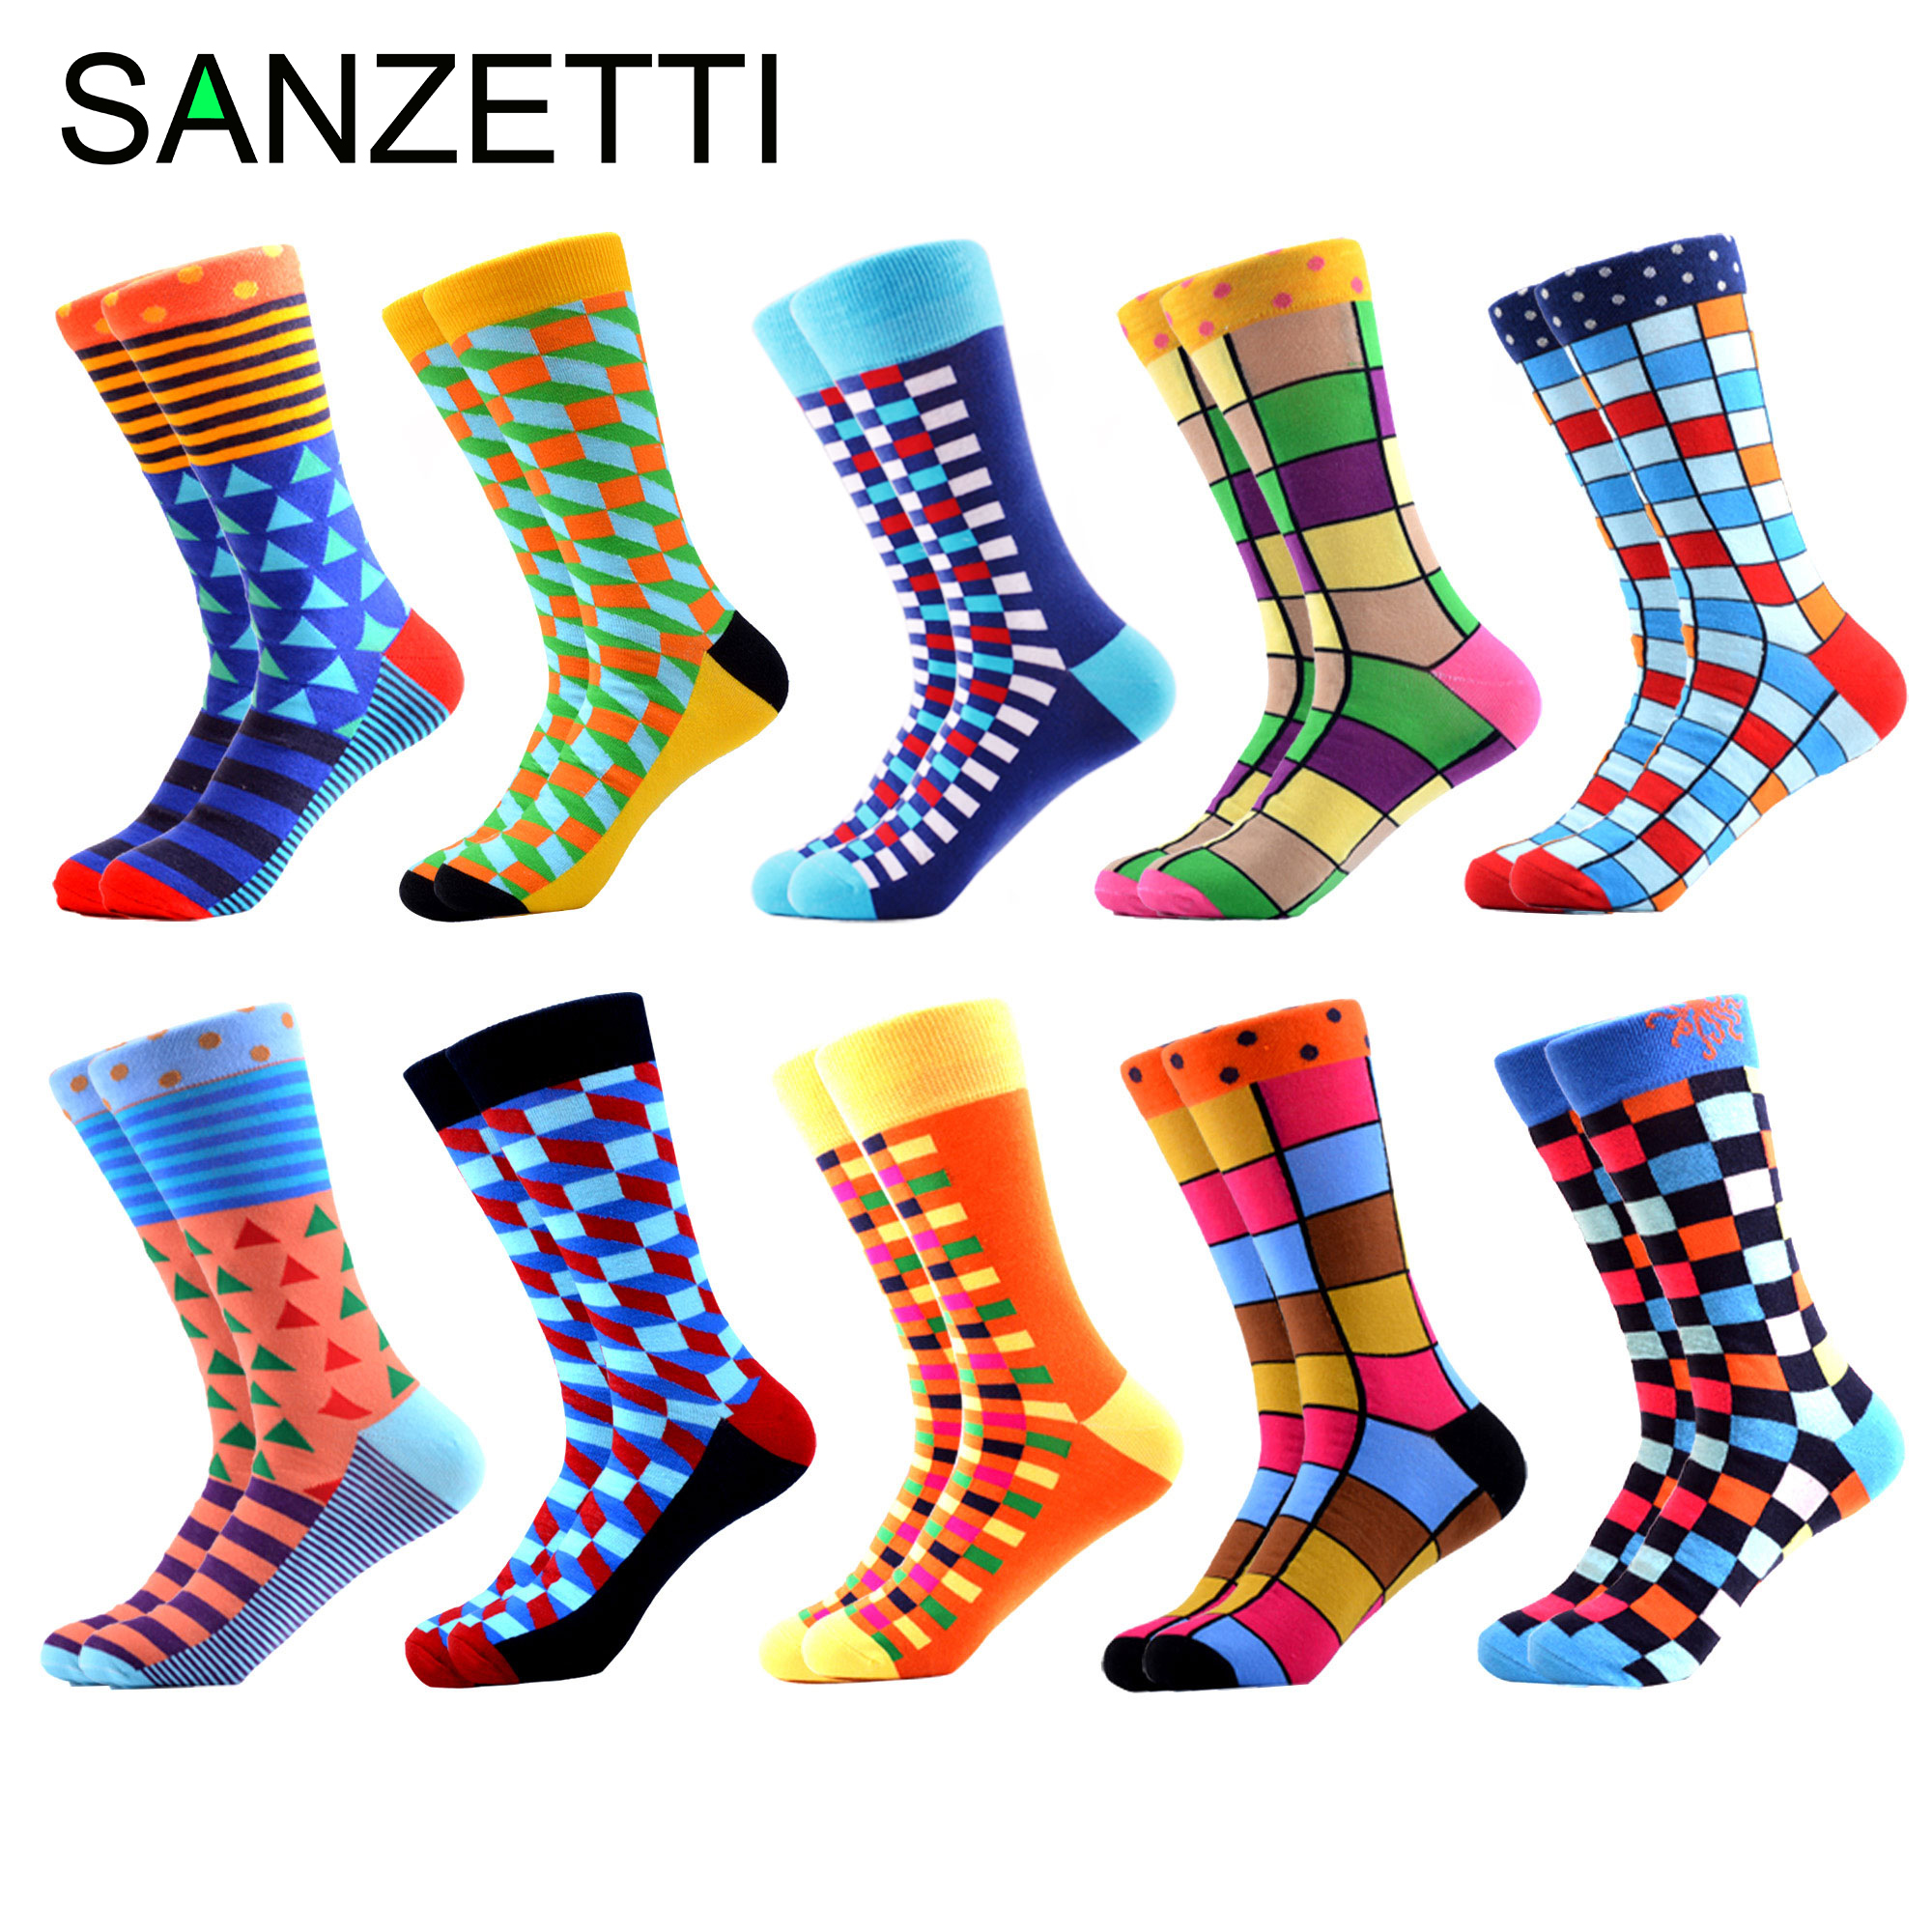 SANZETTI 10 Pairs/Lot Colorful Men's Combed Cotton Socks Hip Hop Street Happy Crew Socks Wedding Party Male Dress Socks For Gift